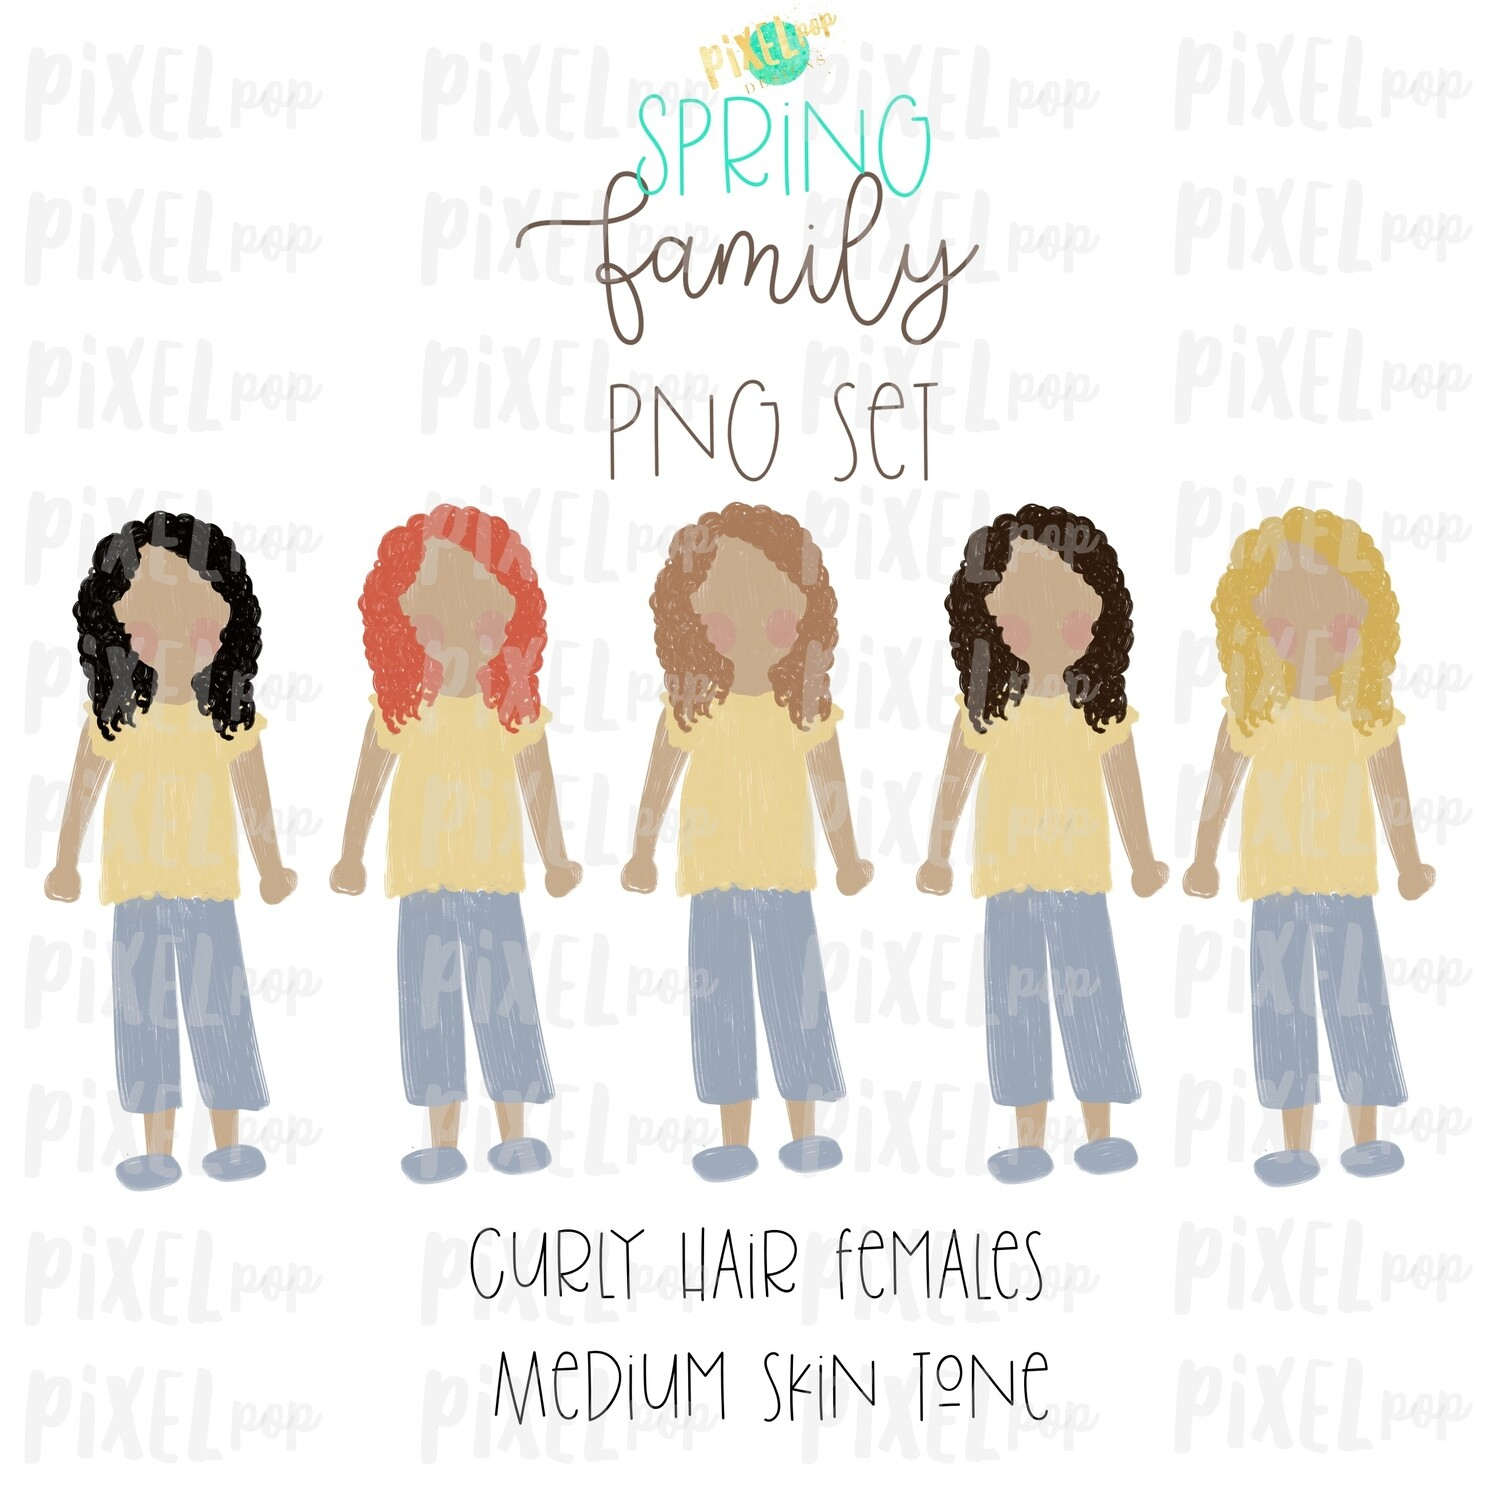 SPRING Curly Haired Females (Female E) Medium Skin Tones Stick People Figure Family Members PNG Sublimation | Family Art | Printable Art